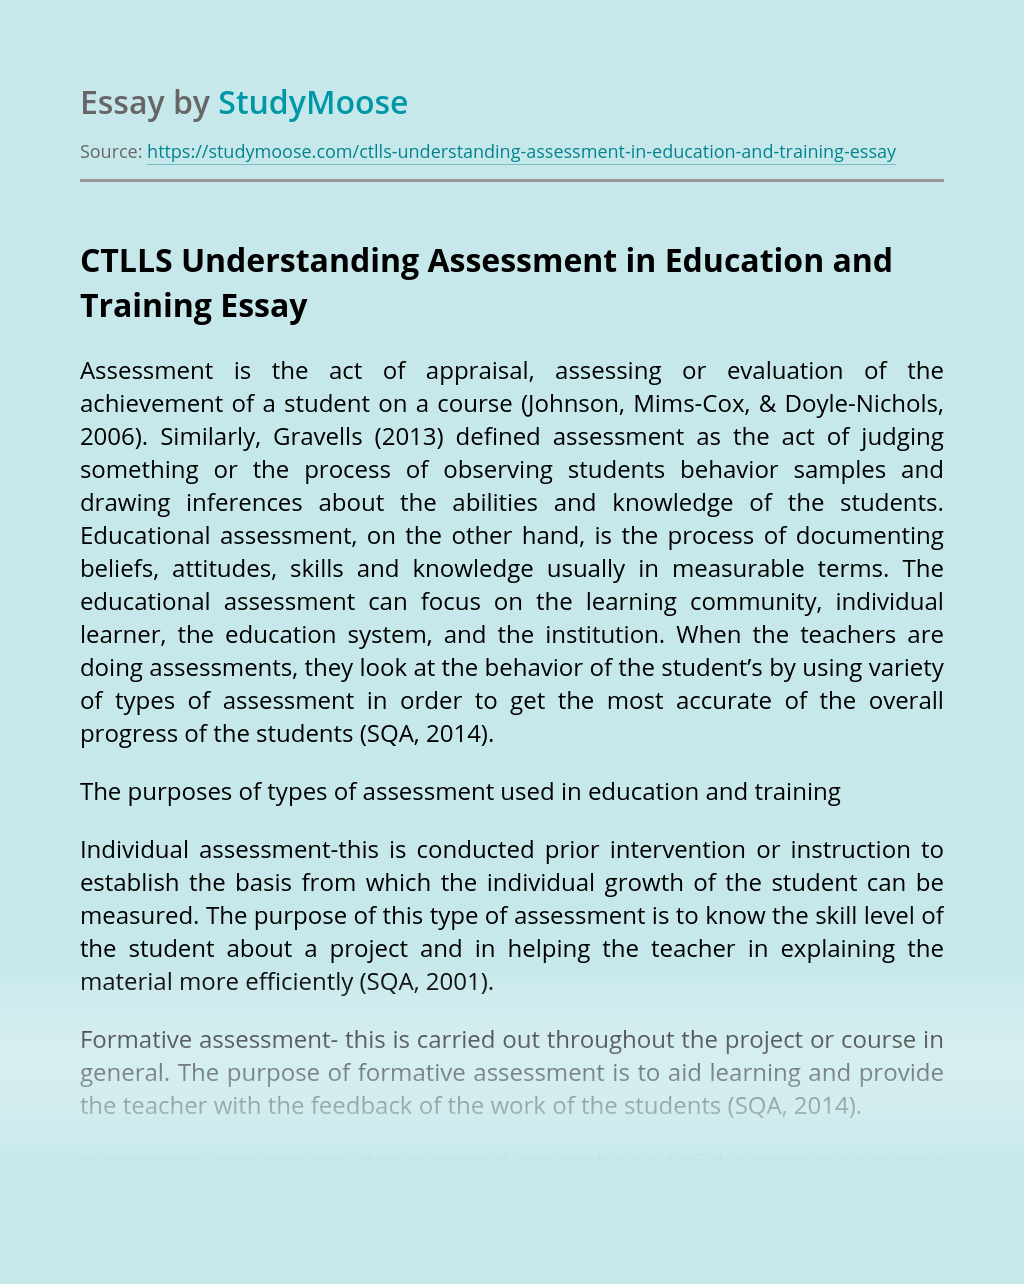 CTLLS Understanding Assessment in Education and Training